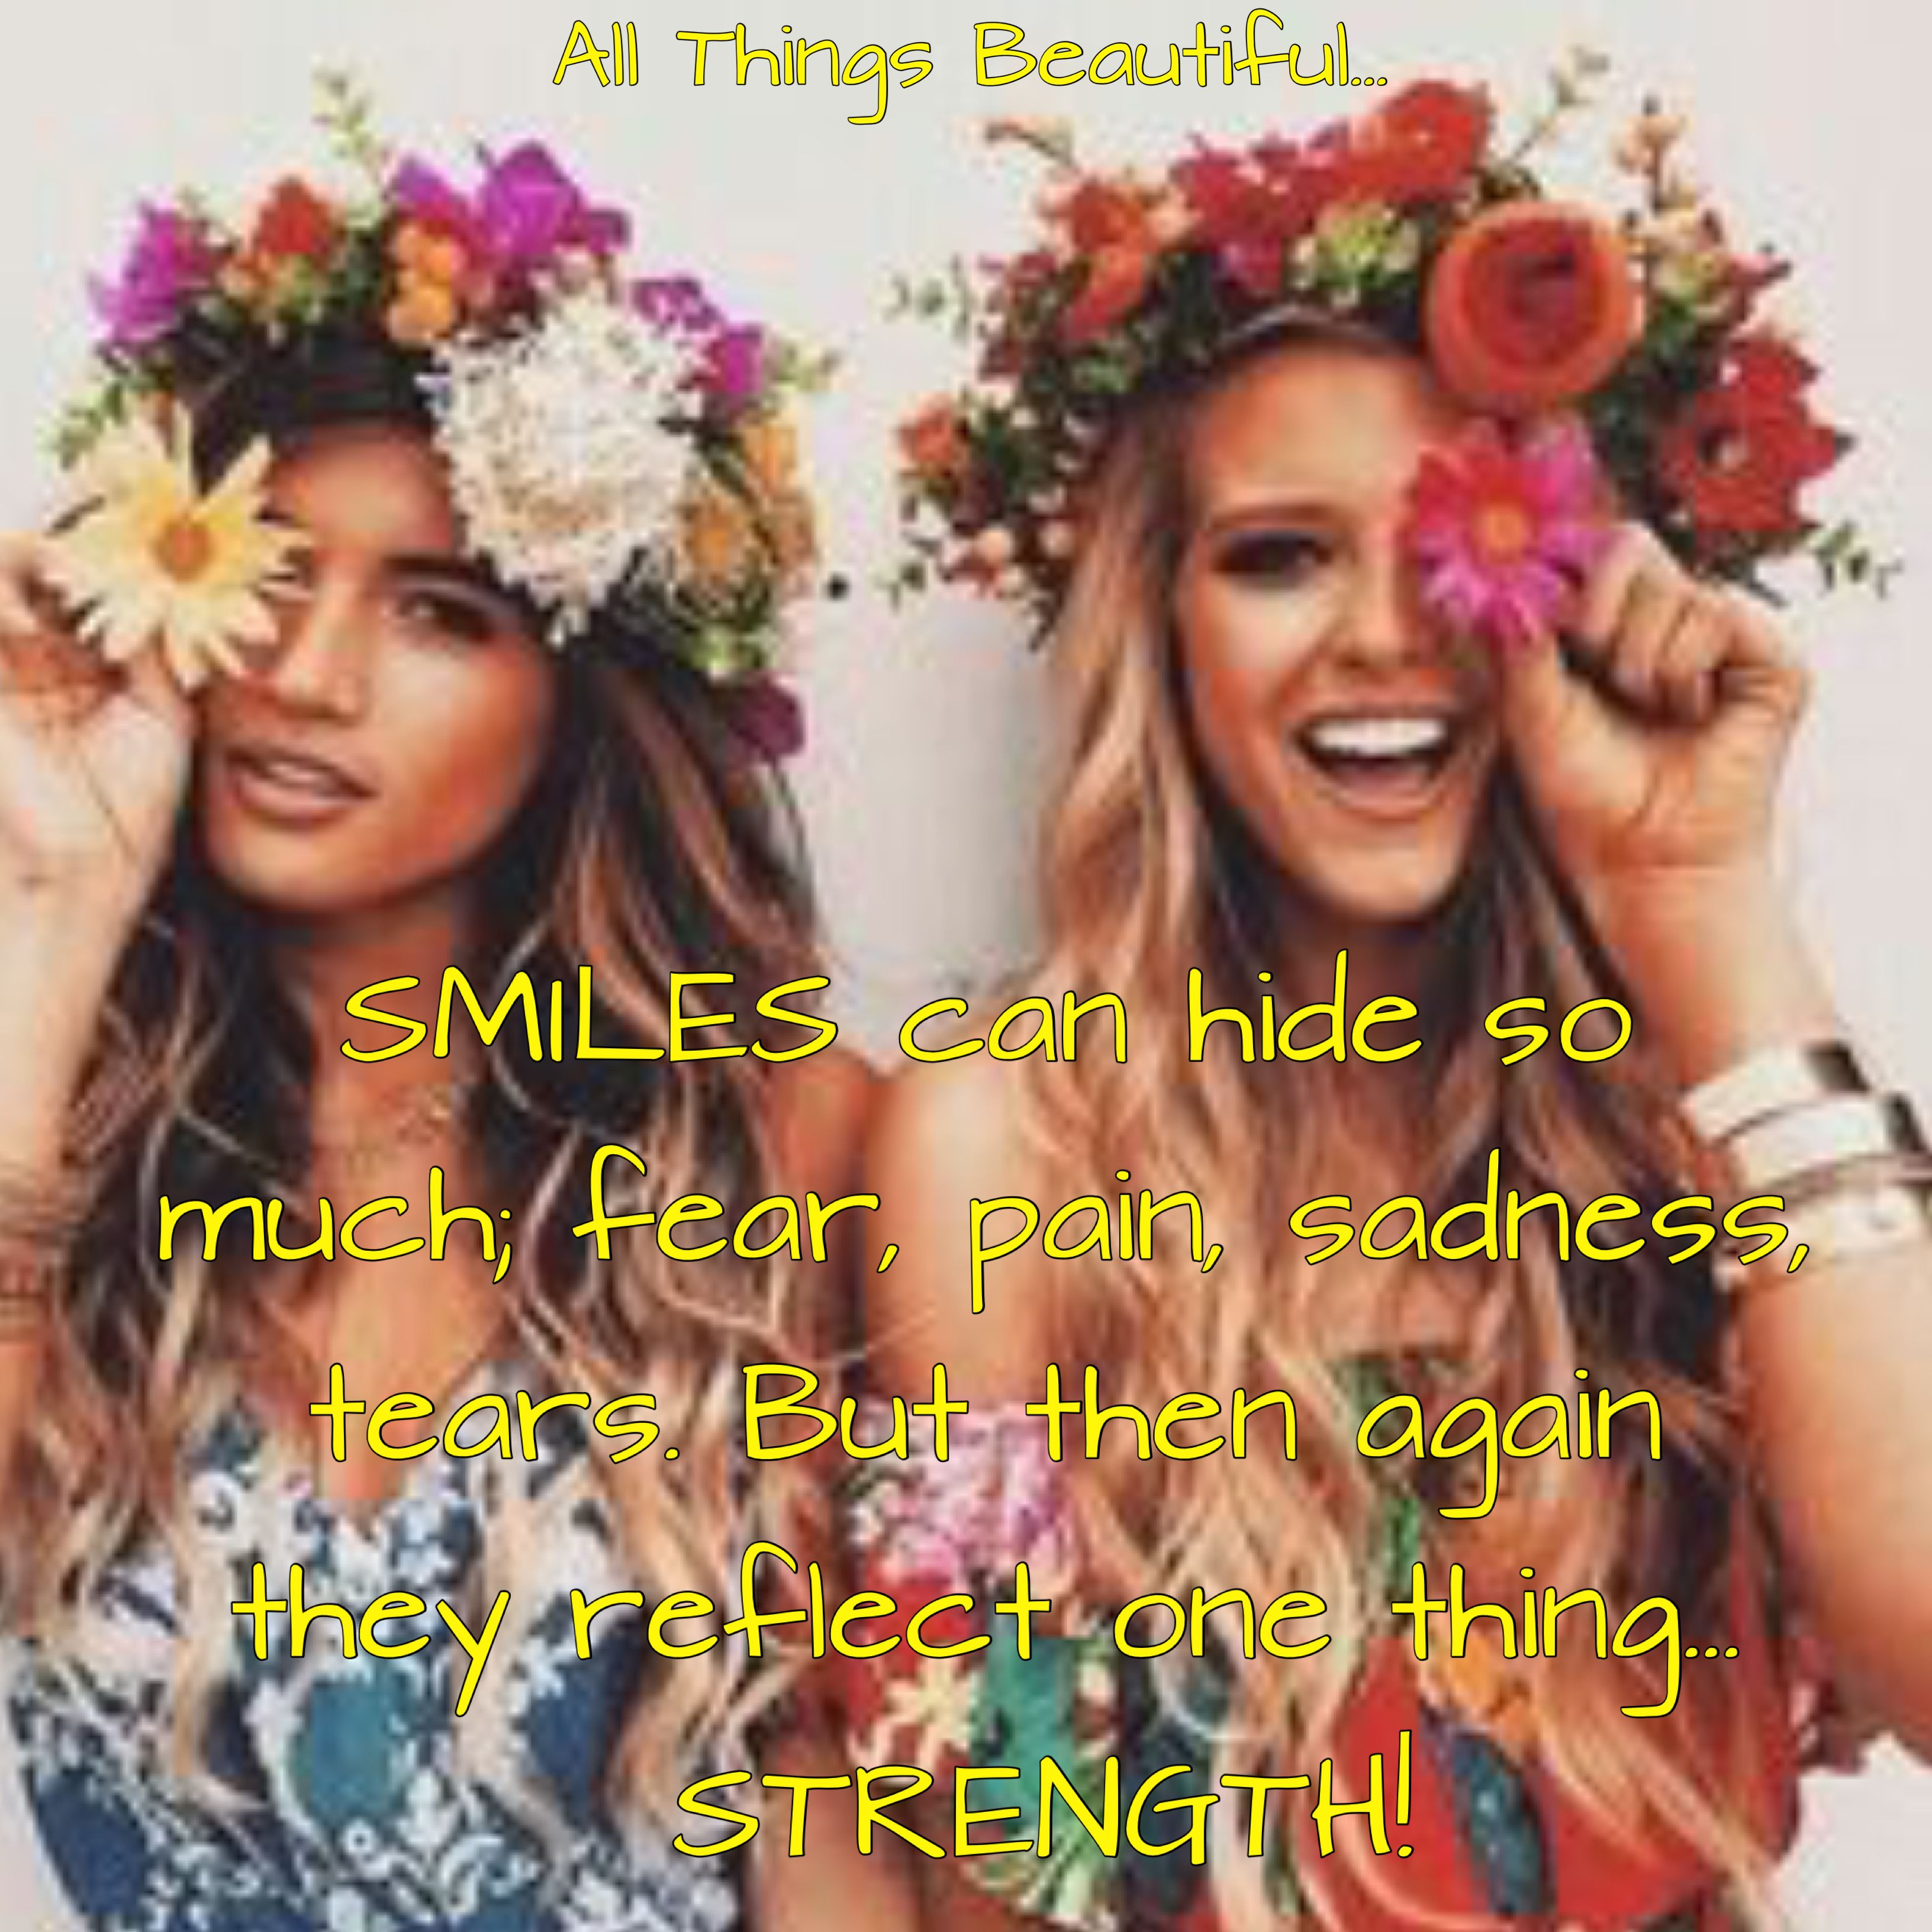 Hippie quotes image by mary oberg on for the next